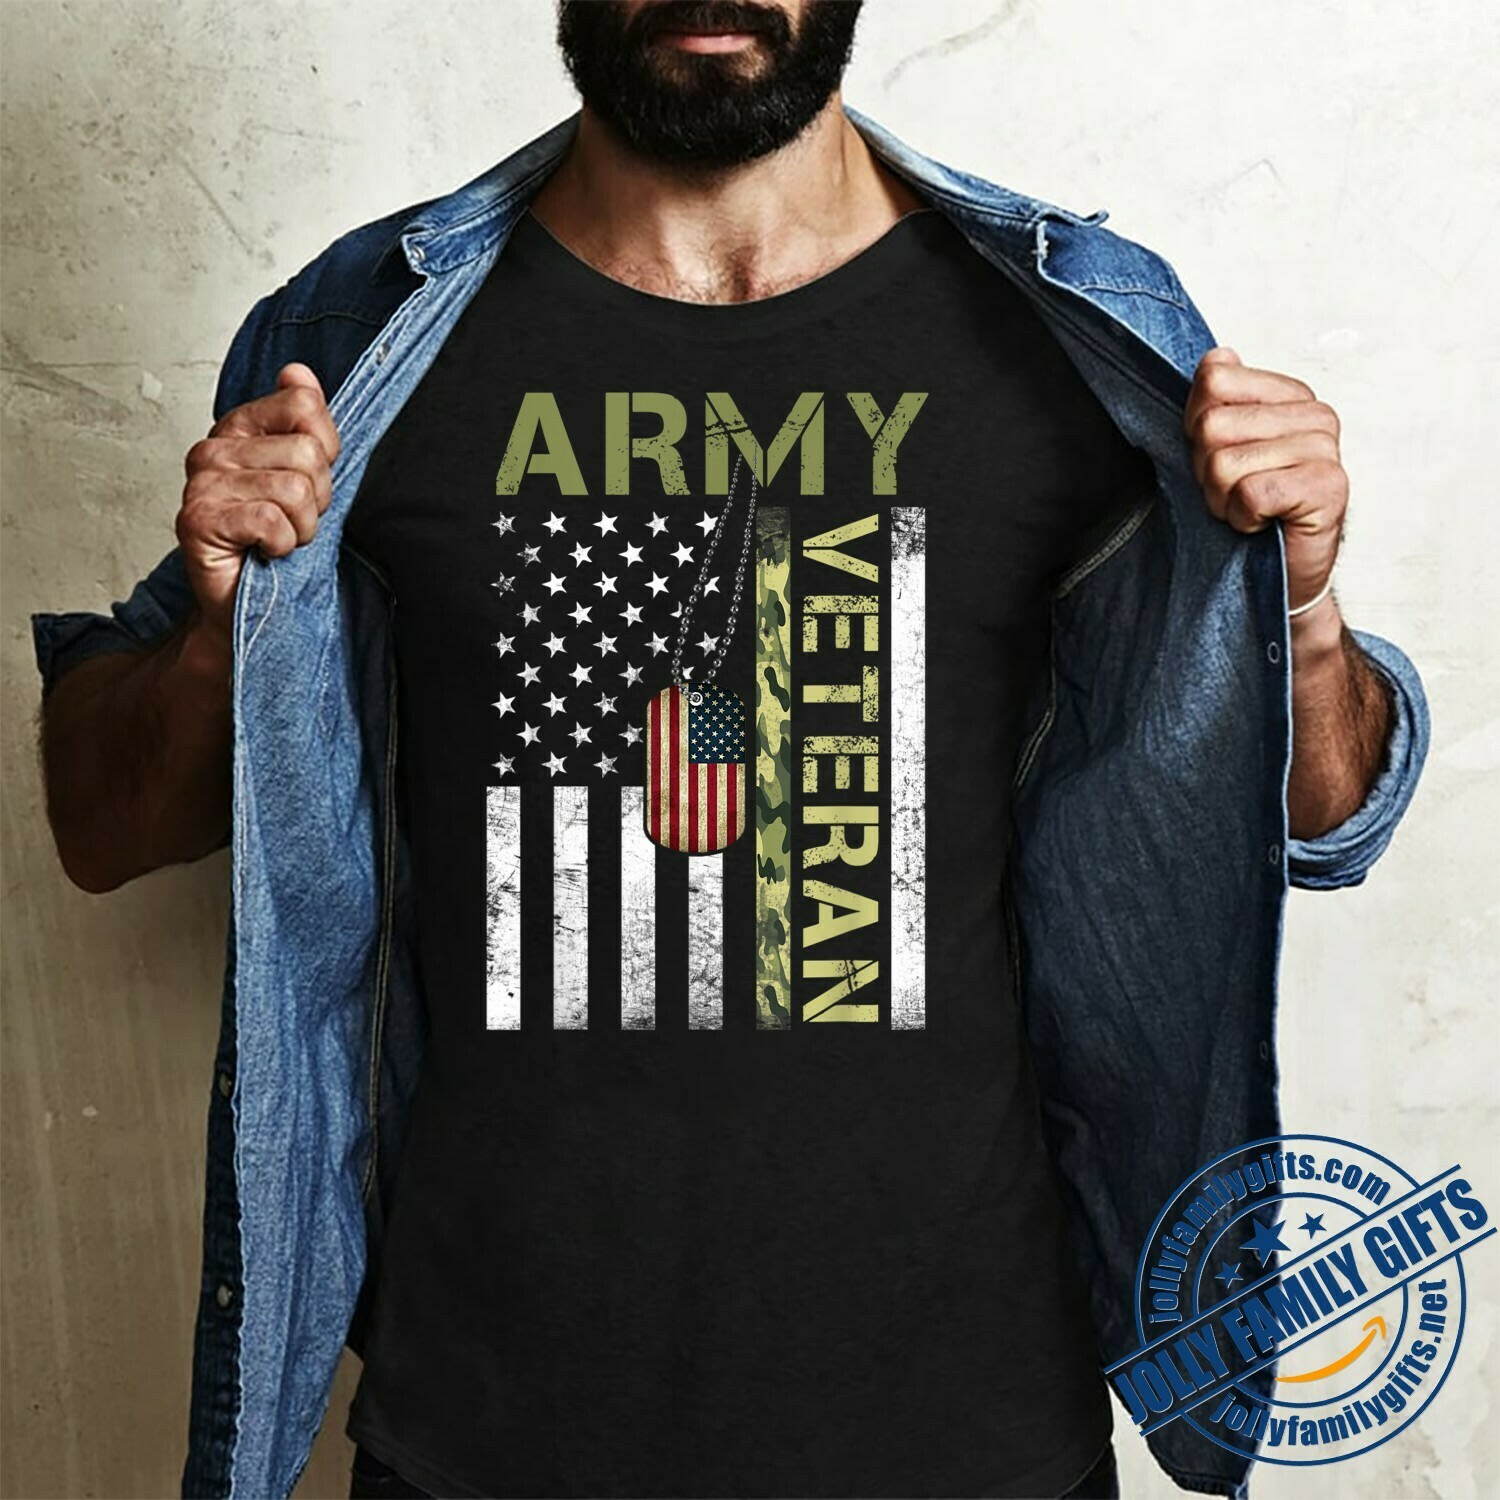 American Flag Camo Proud US United States Military Army Veteran  Unisex T-Shirt Hoodie Sweatshirt Sweater Plus Size for Ladies Women Men Kids Youth Gifts Tee Jolly Family Gifts